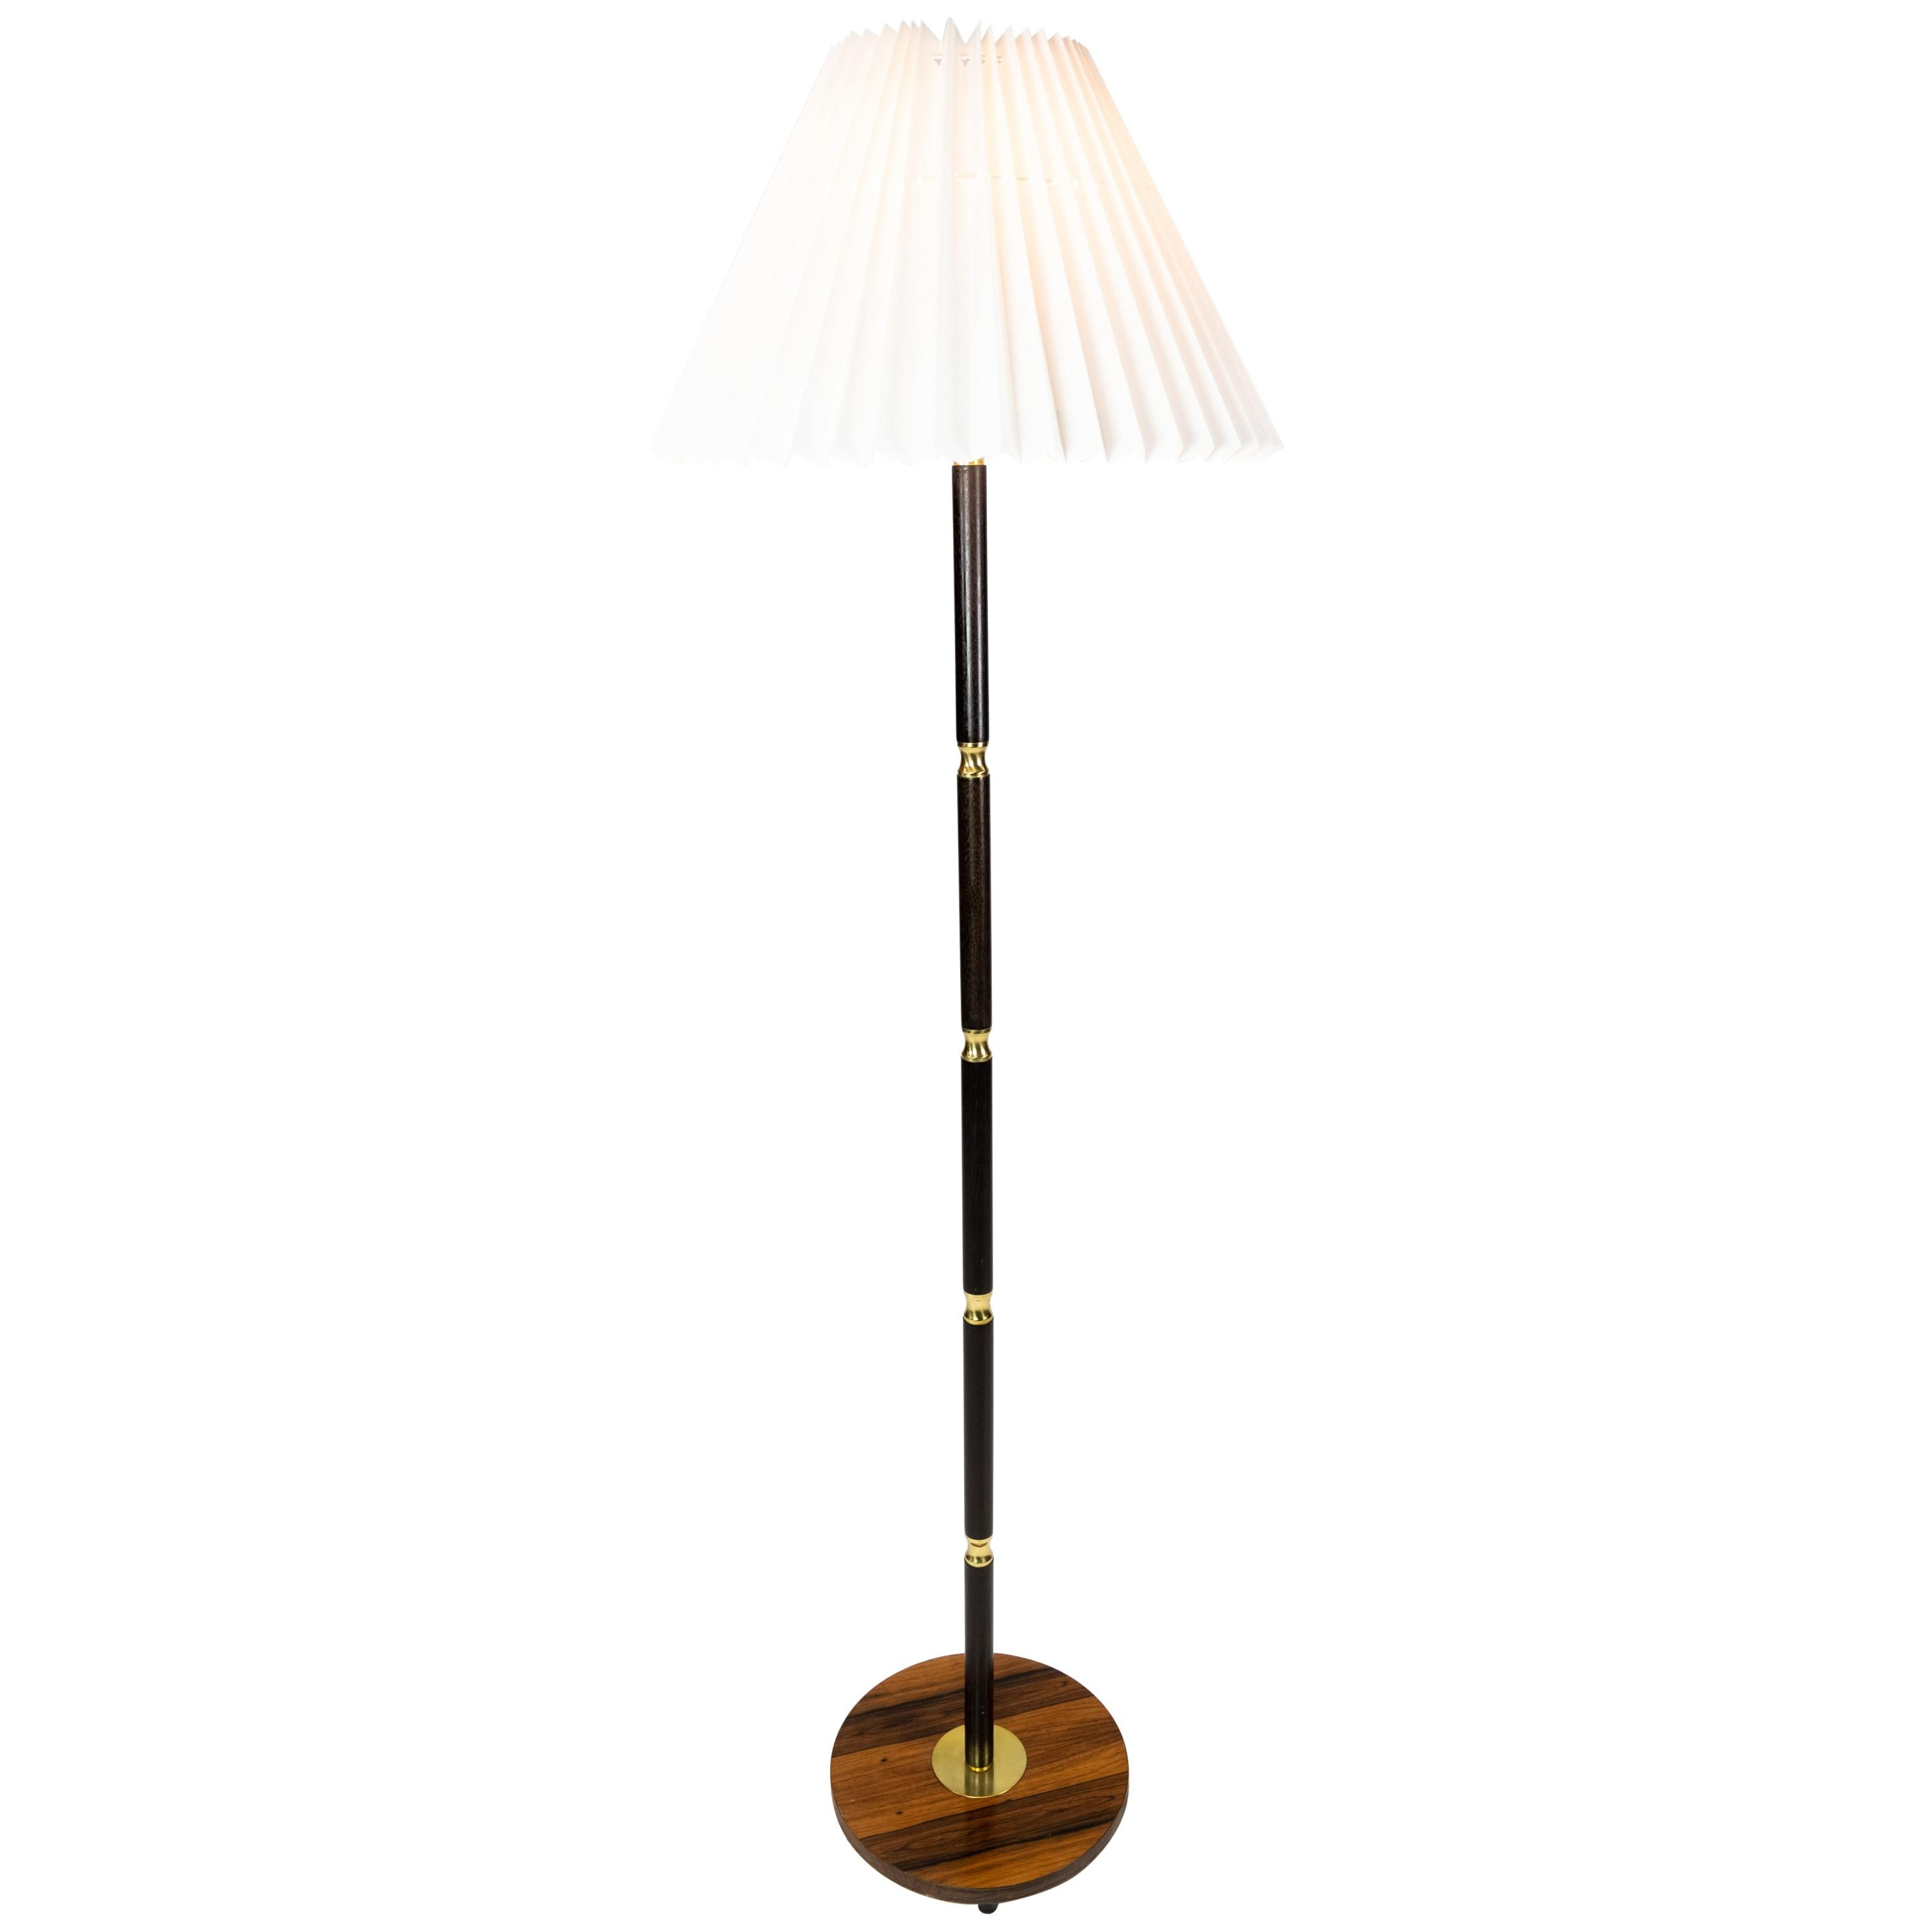 Floor Lamp in Rosewood and Brass of Danish Design from the 1960s